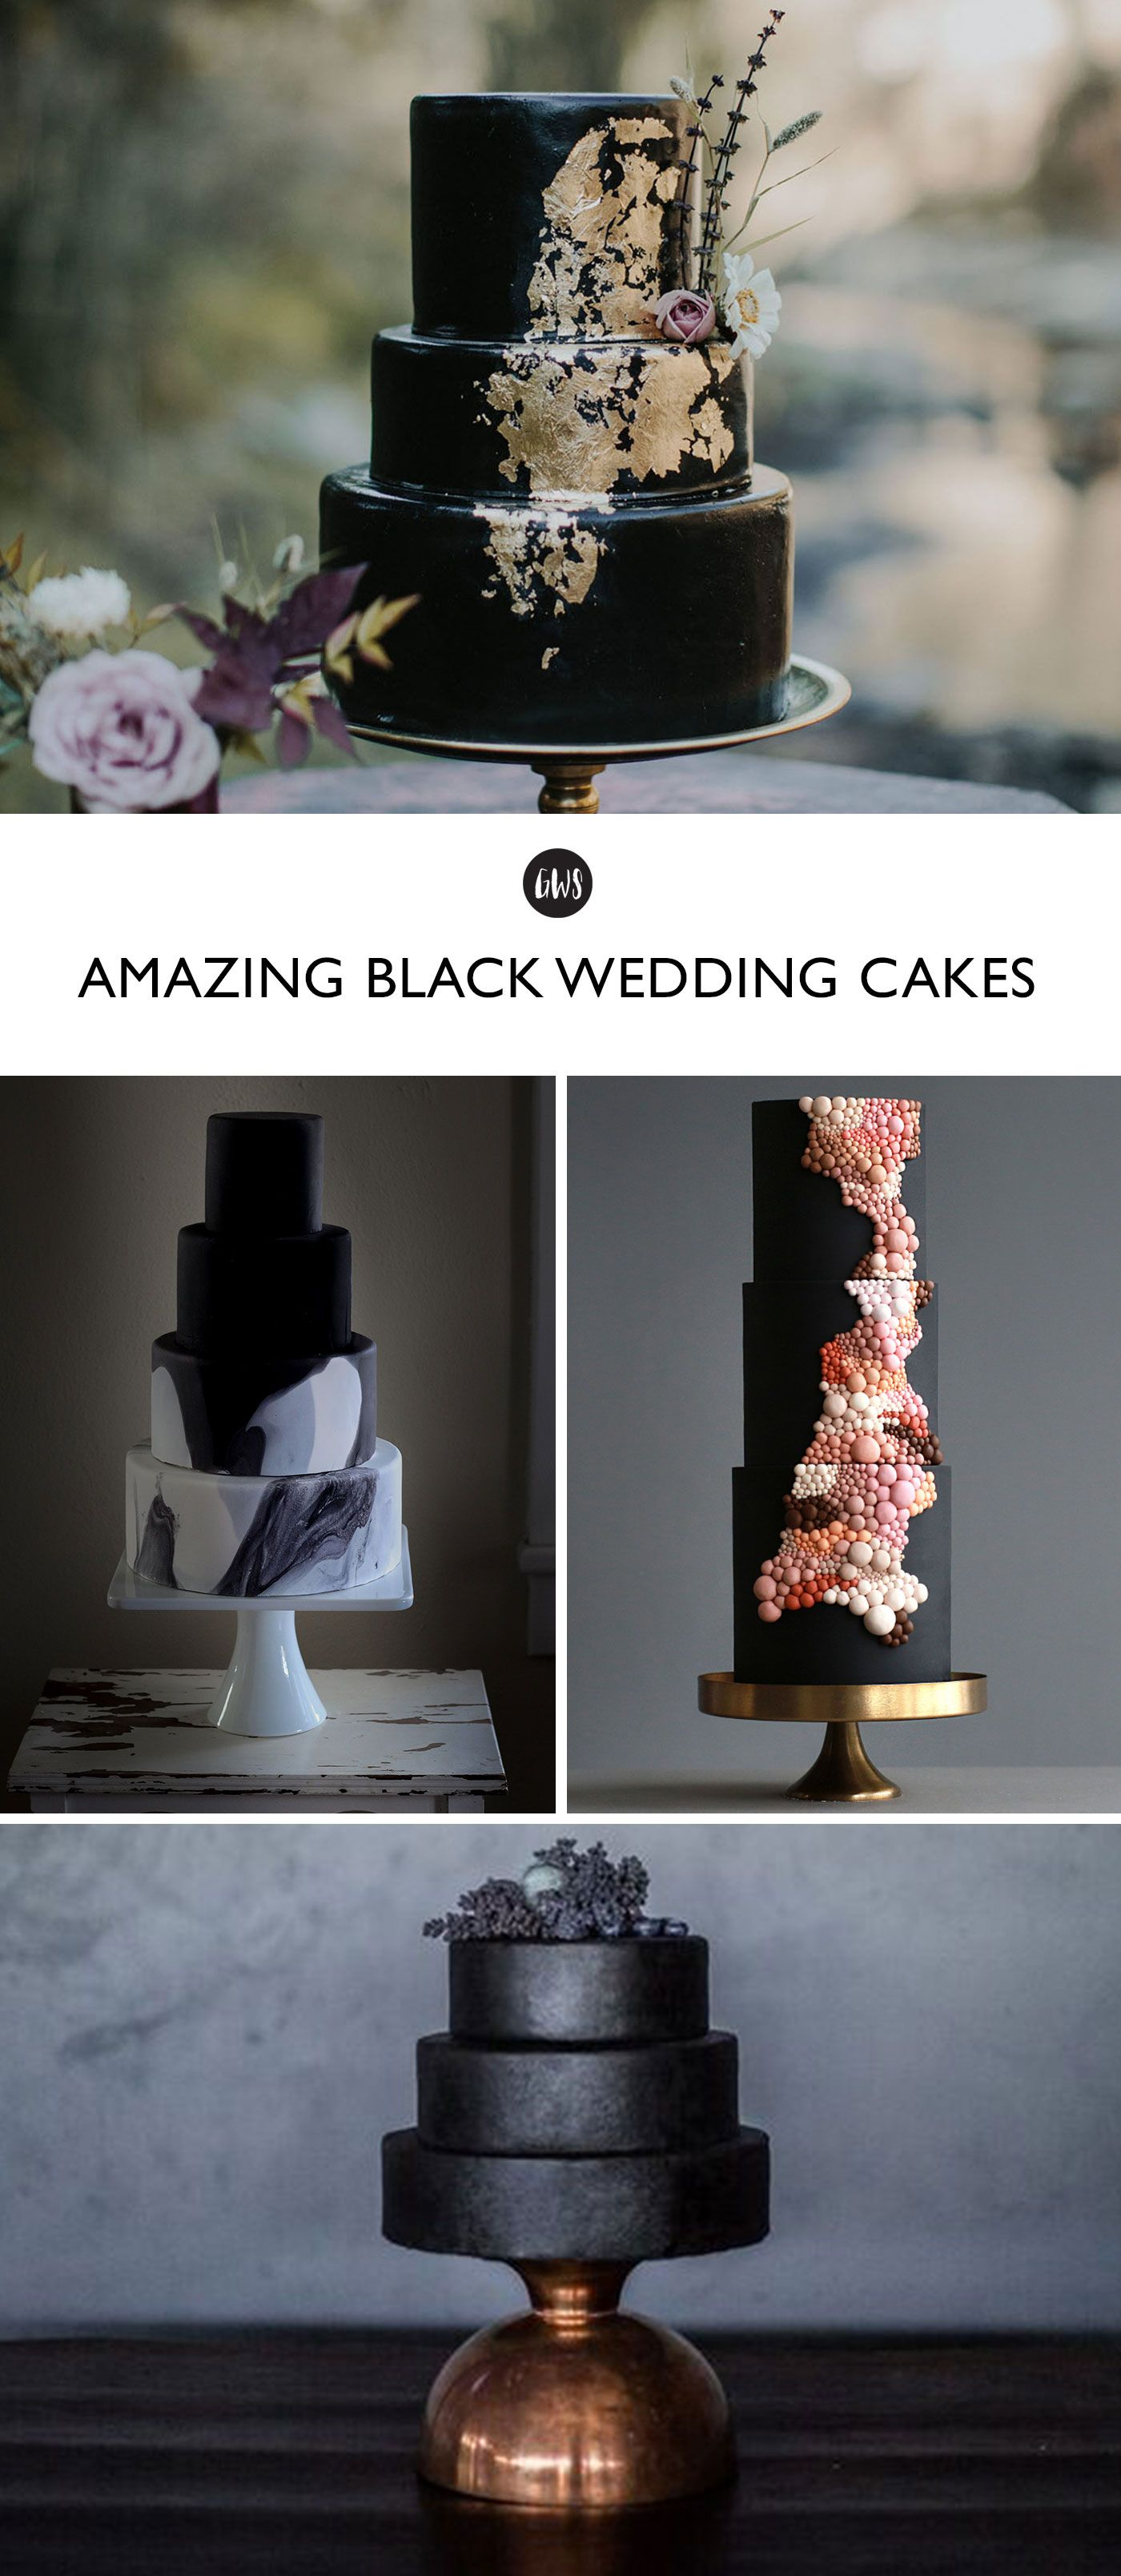 Tshivenda traditional wedding decor   of the Most Chic  Unexpected Black Wedding Cakes  cake deco